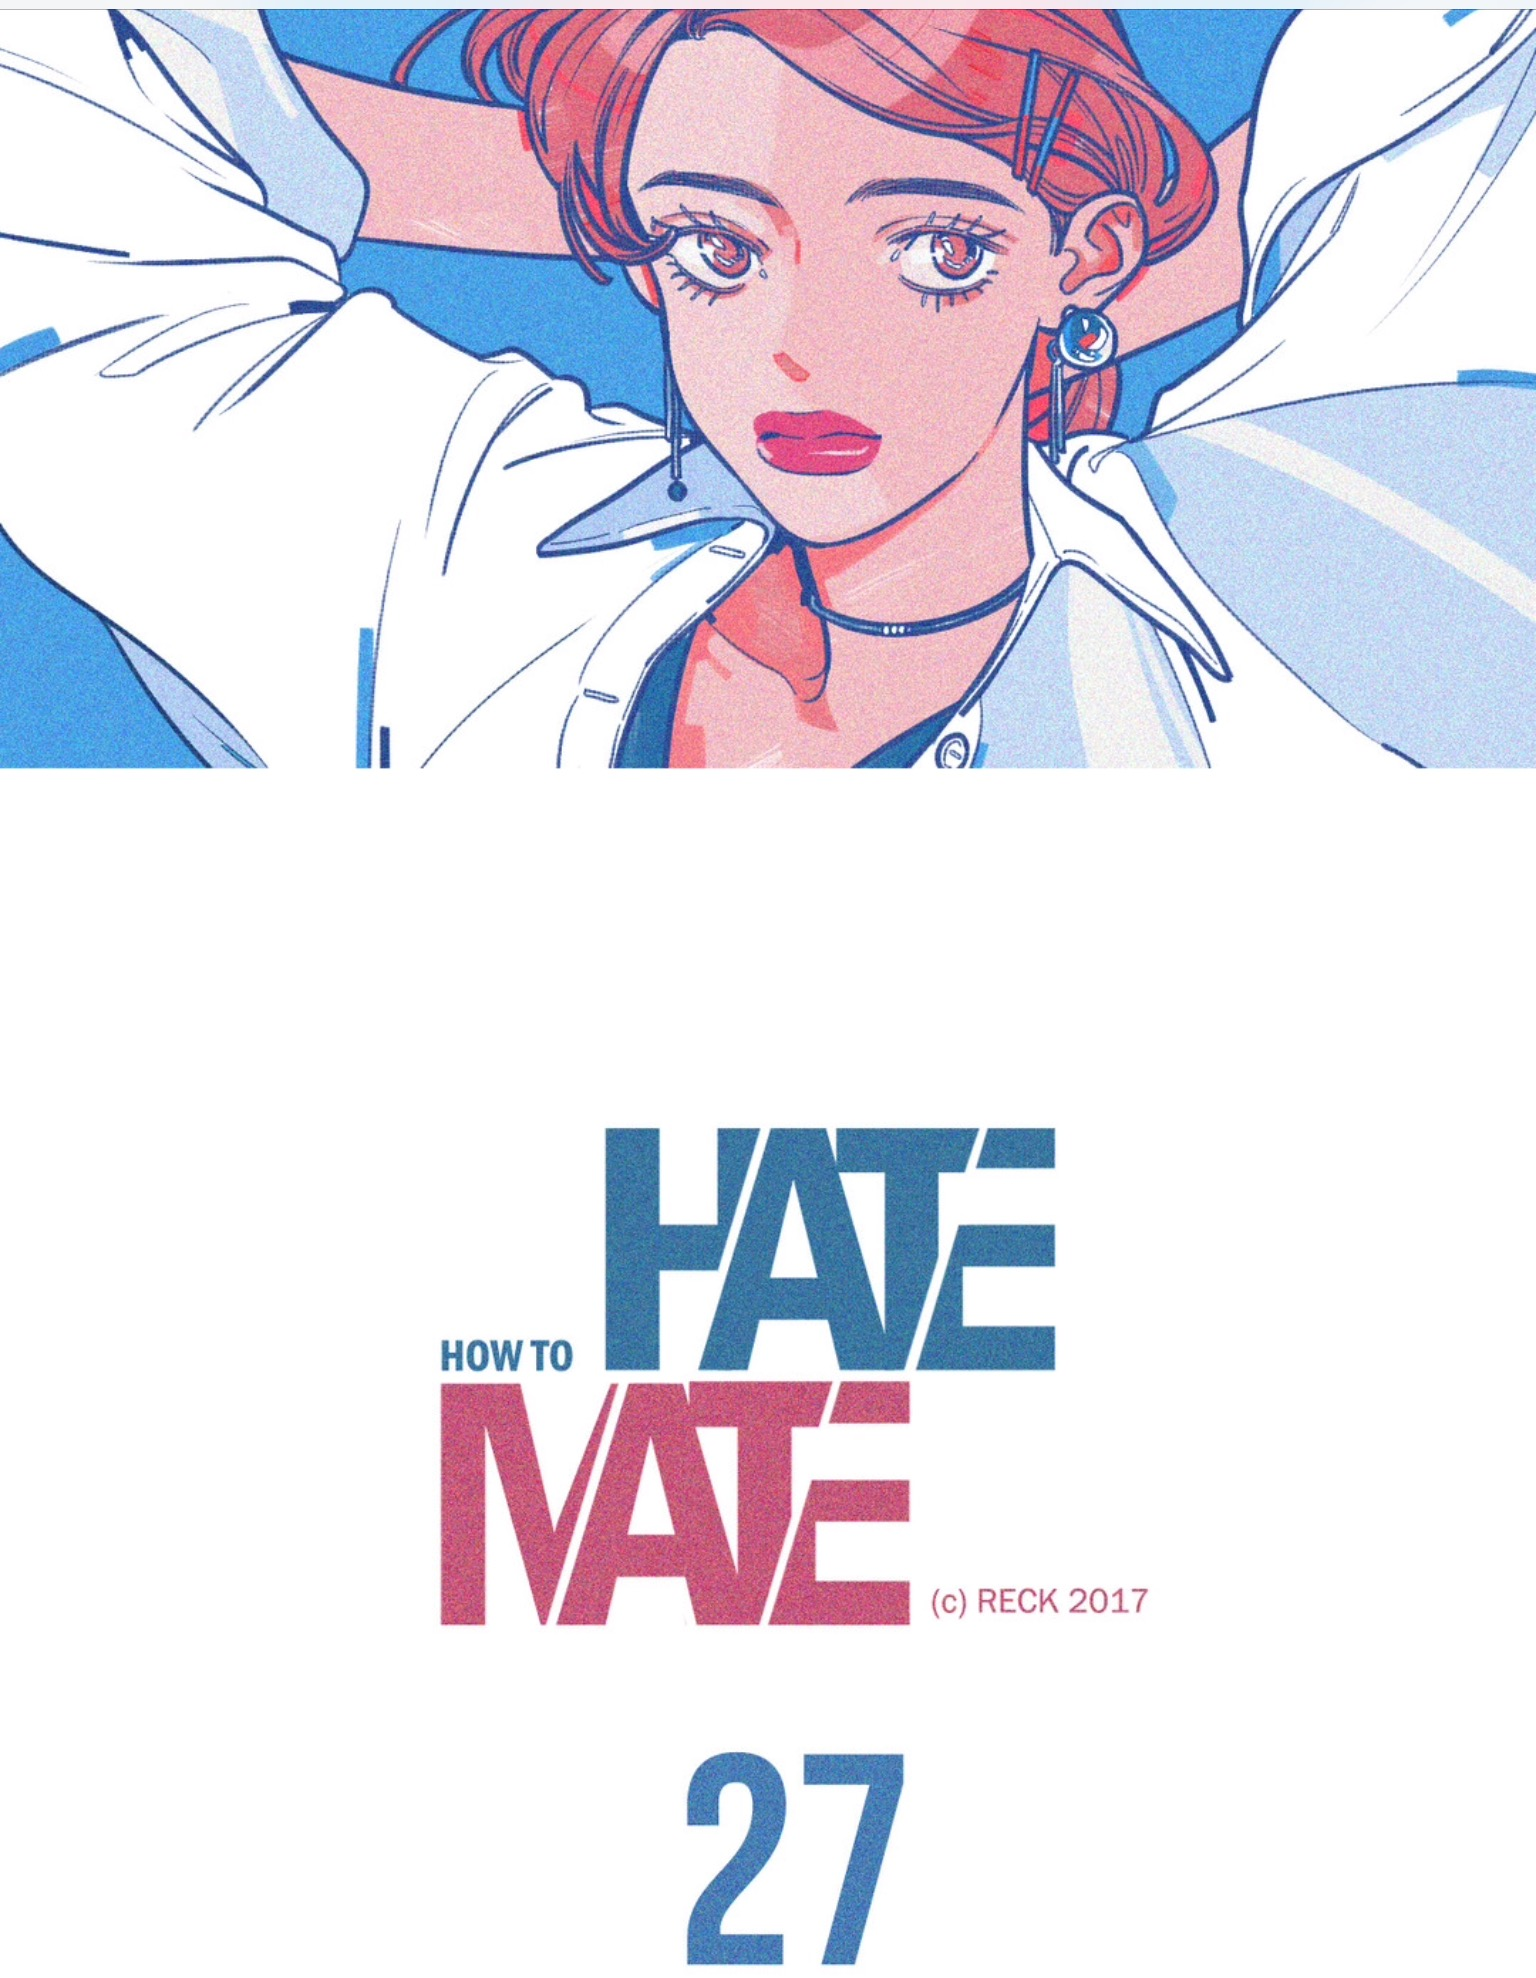 Hate Mate - Chapter 29